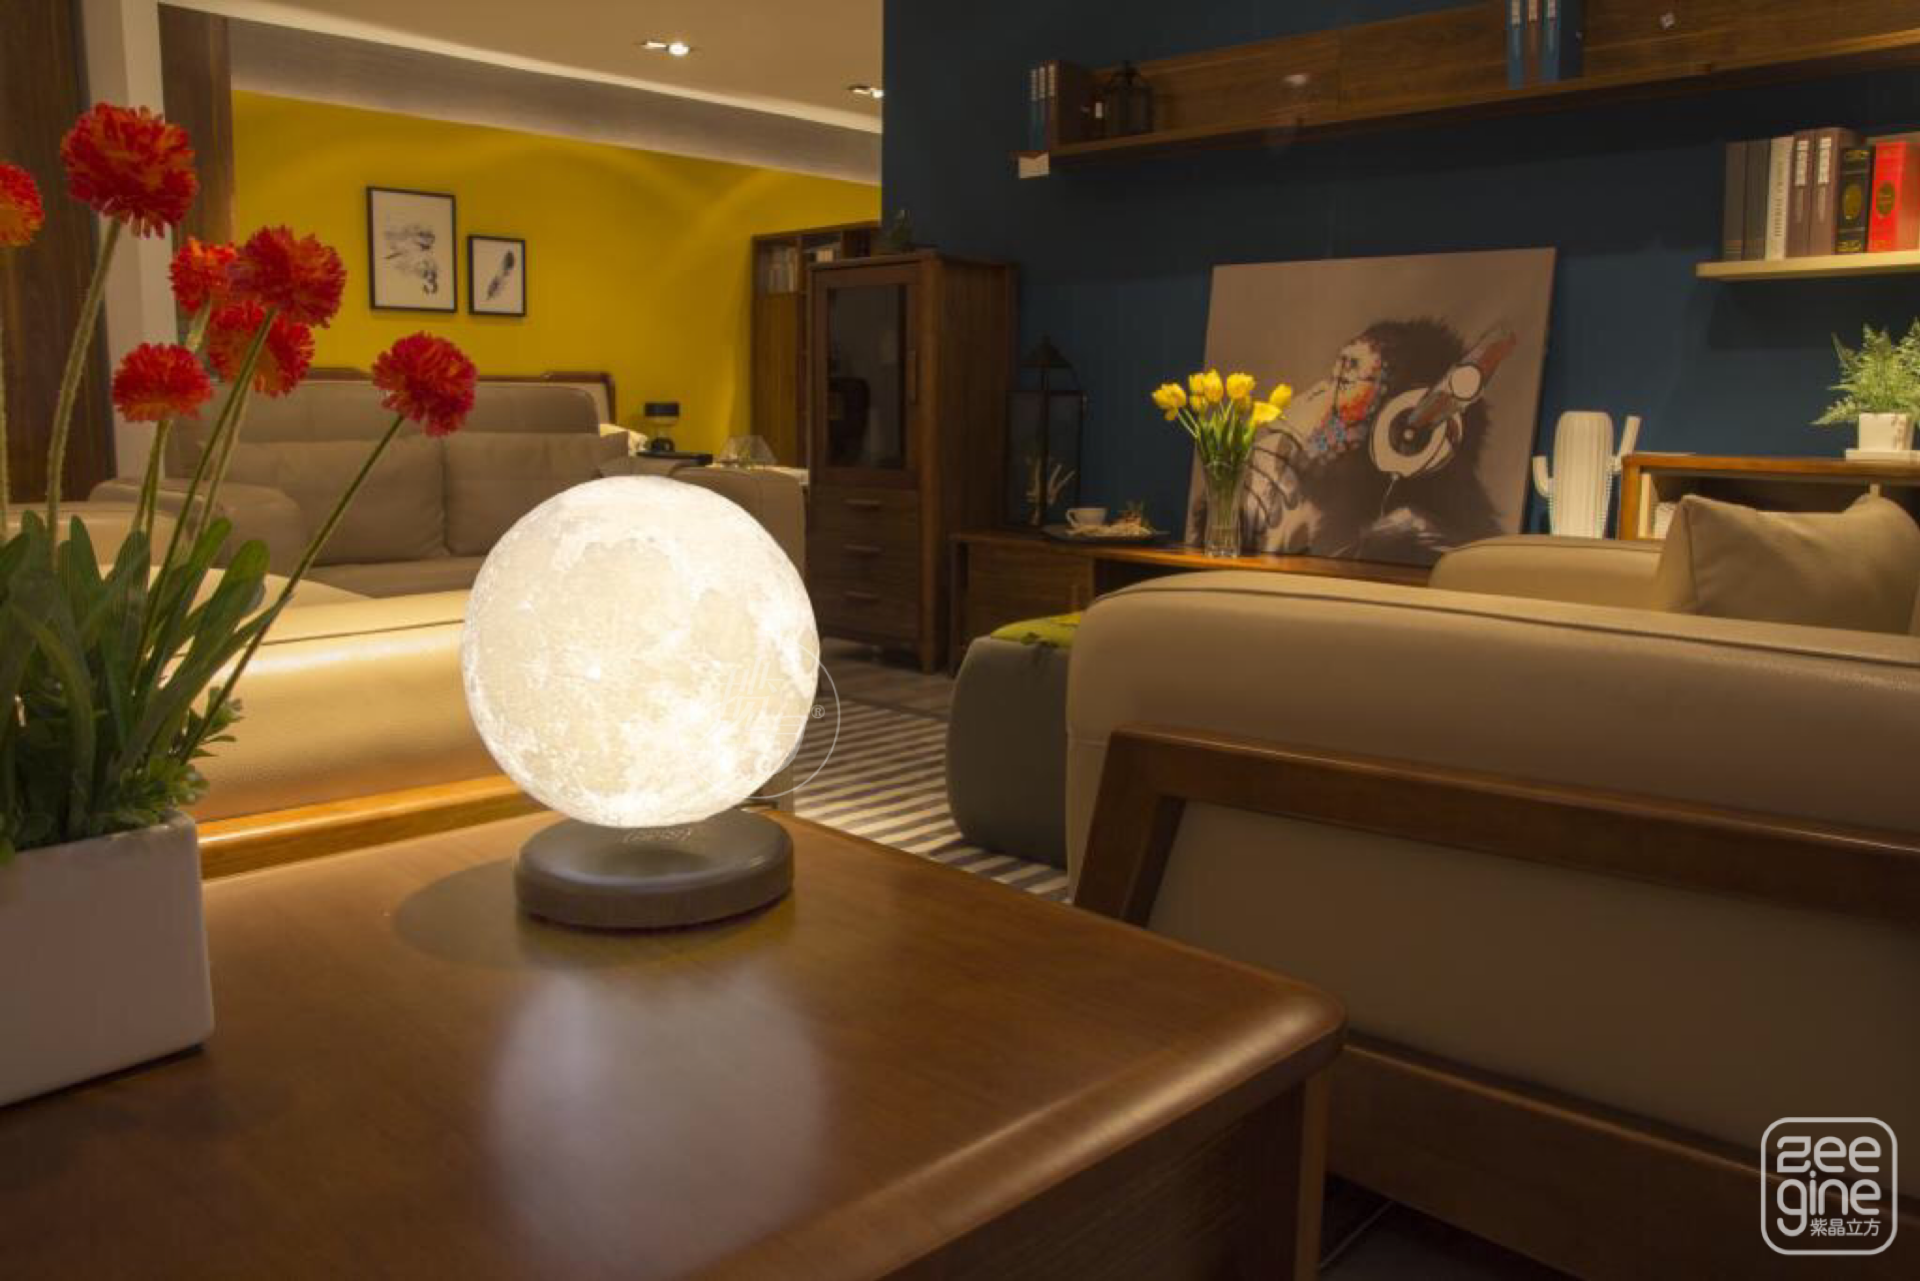 Decorative Home S Moon Levituna Will Be Released Soon In America And Uk 3dprinting 3dprint Levituna Moonlamp Zeegine I Lamp Interior Design Home Decor